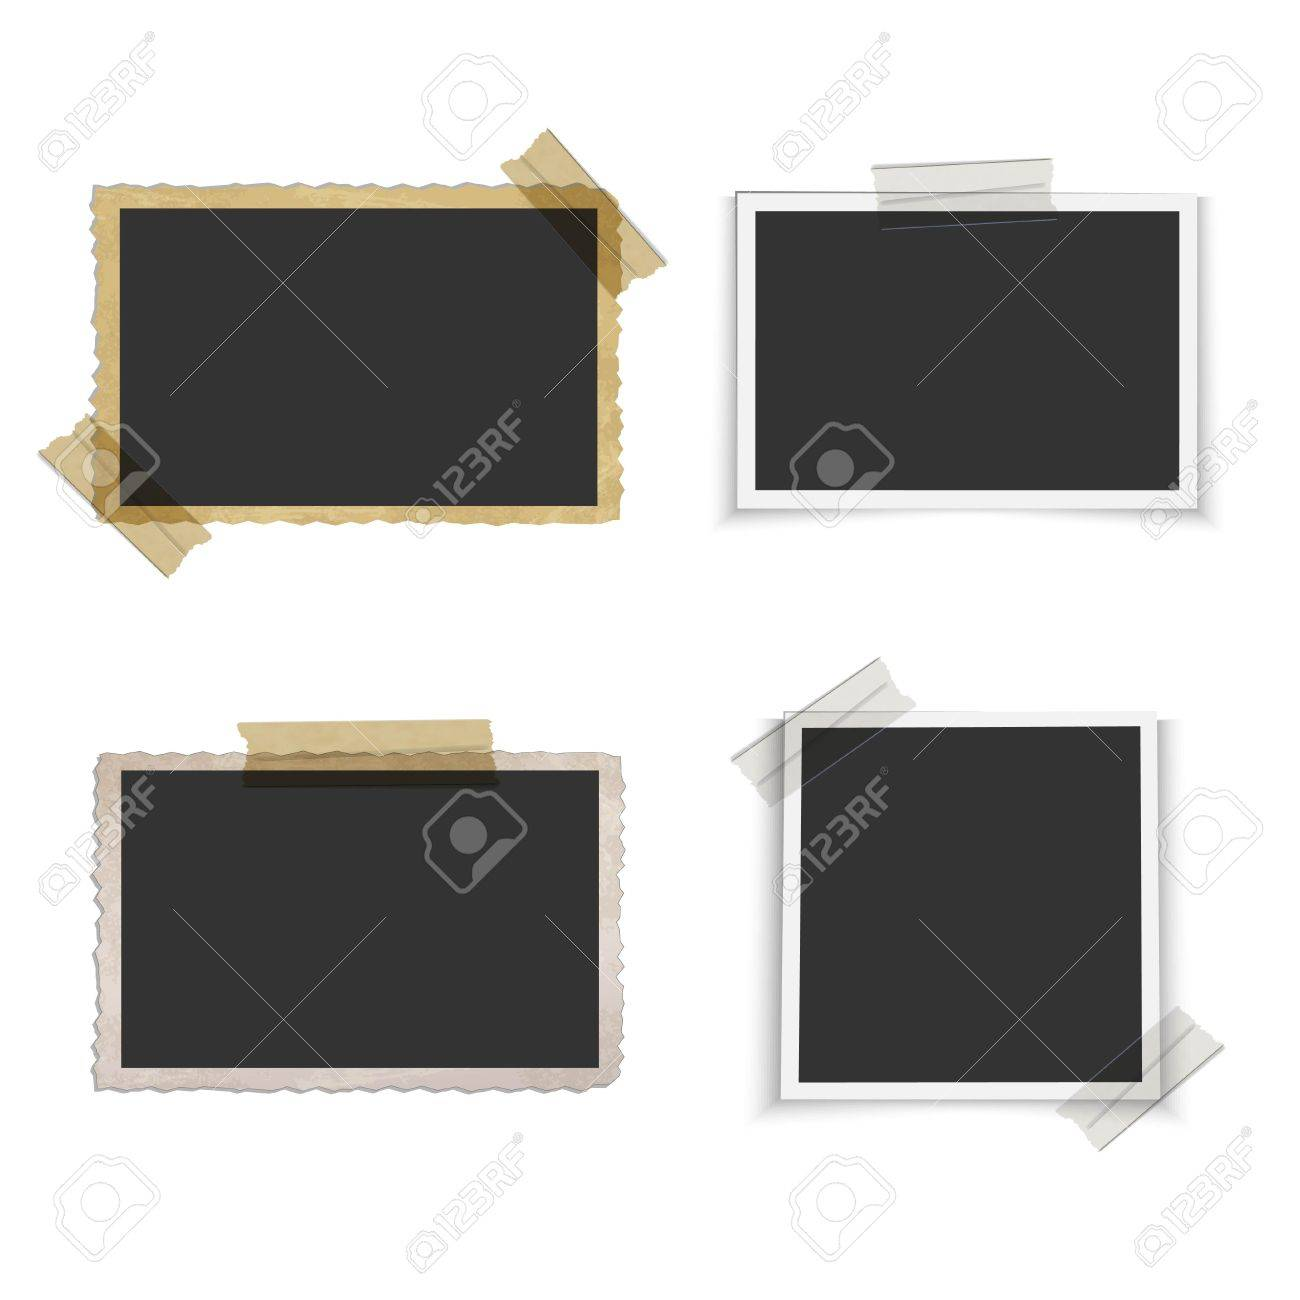 Old blank photo frame with tape - 56409530